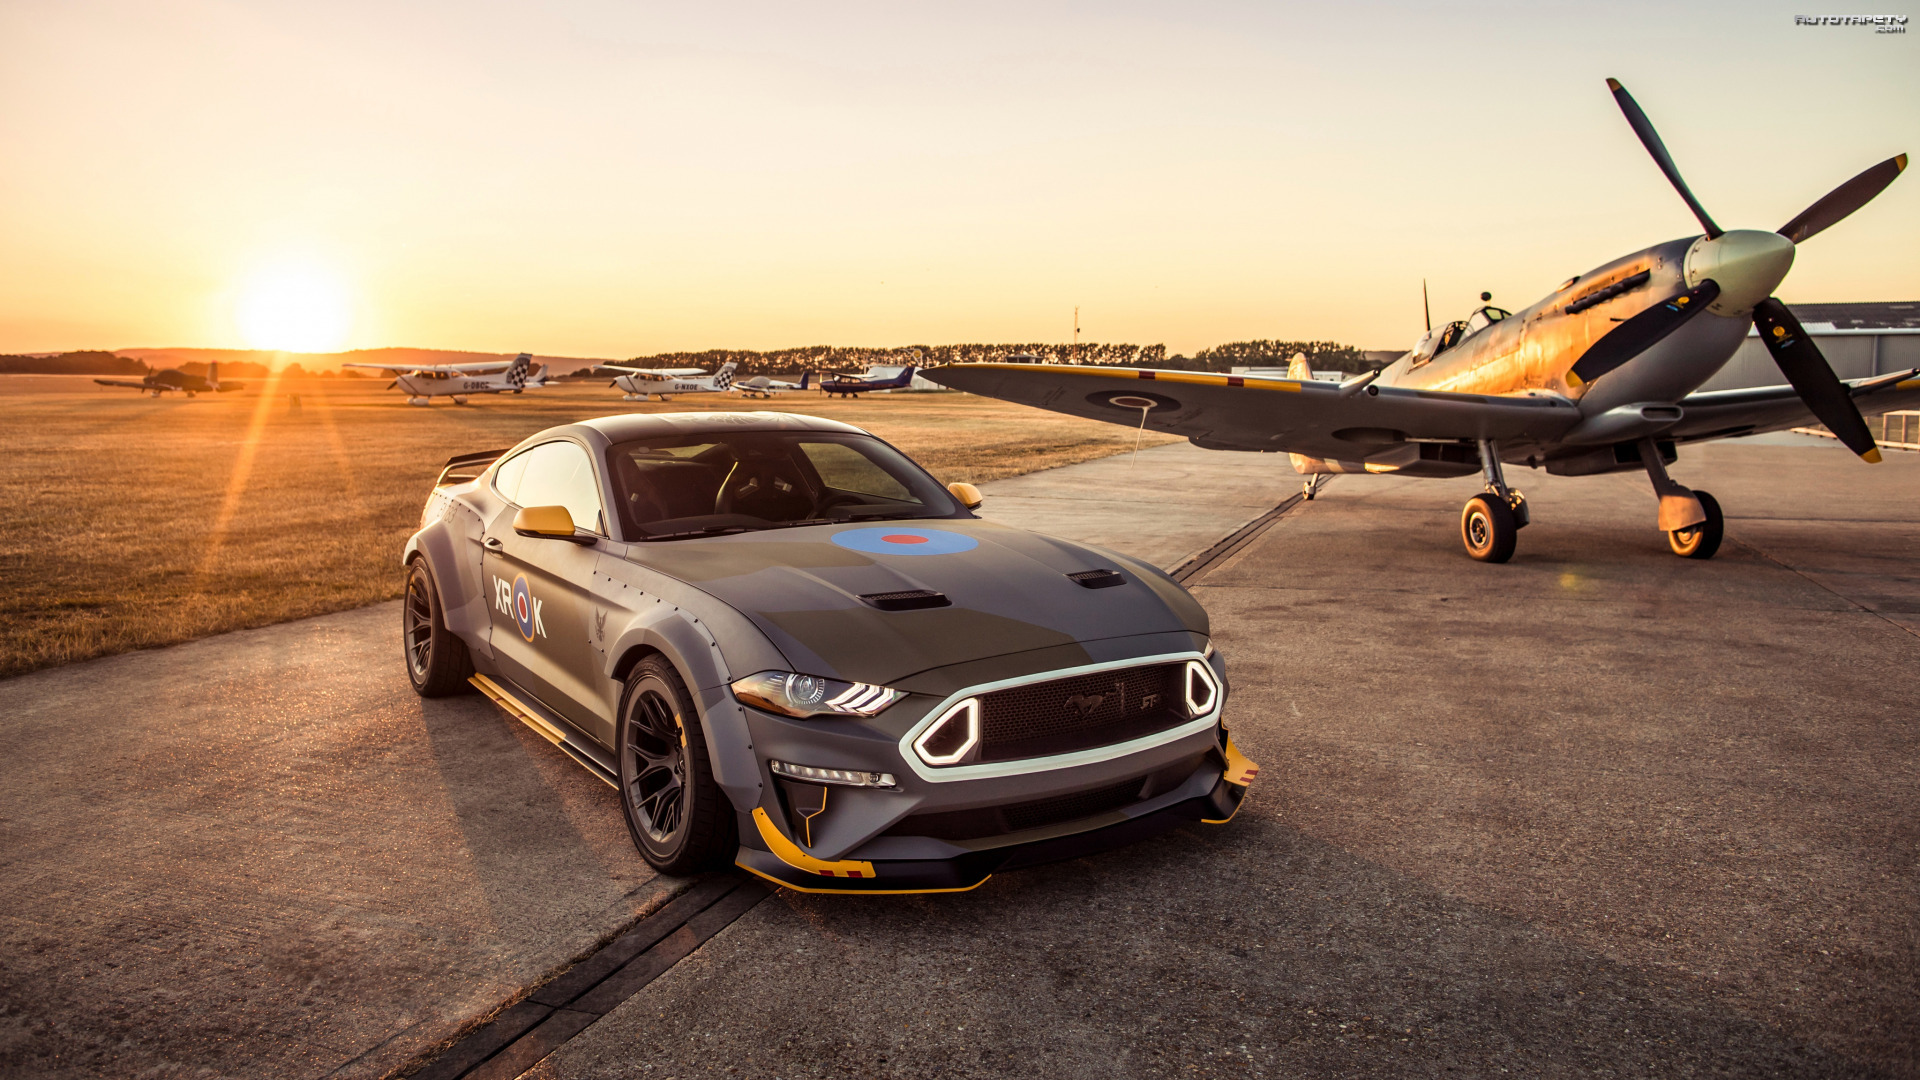 Ford Mustang RTR GT, Samolot